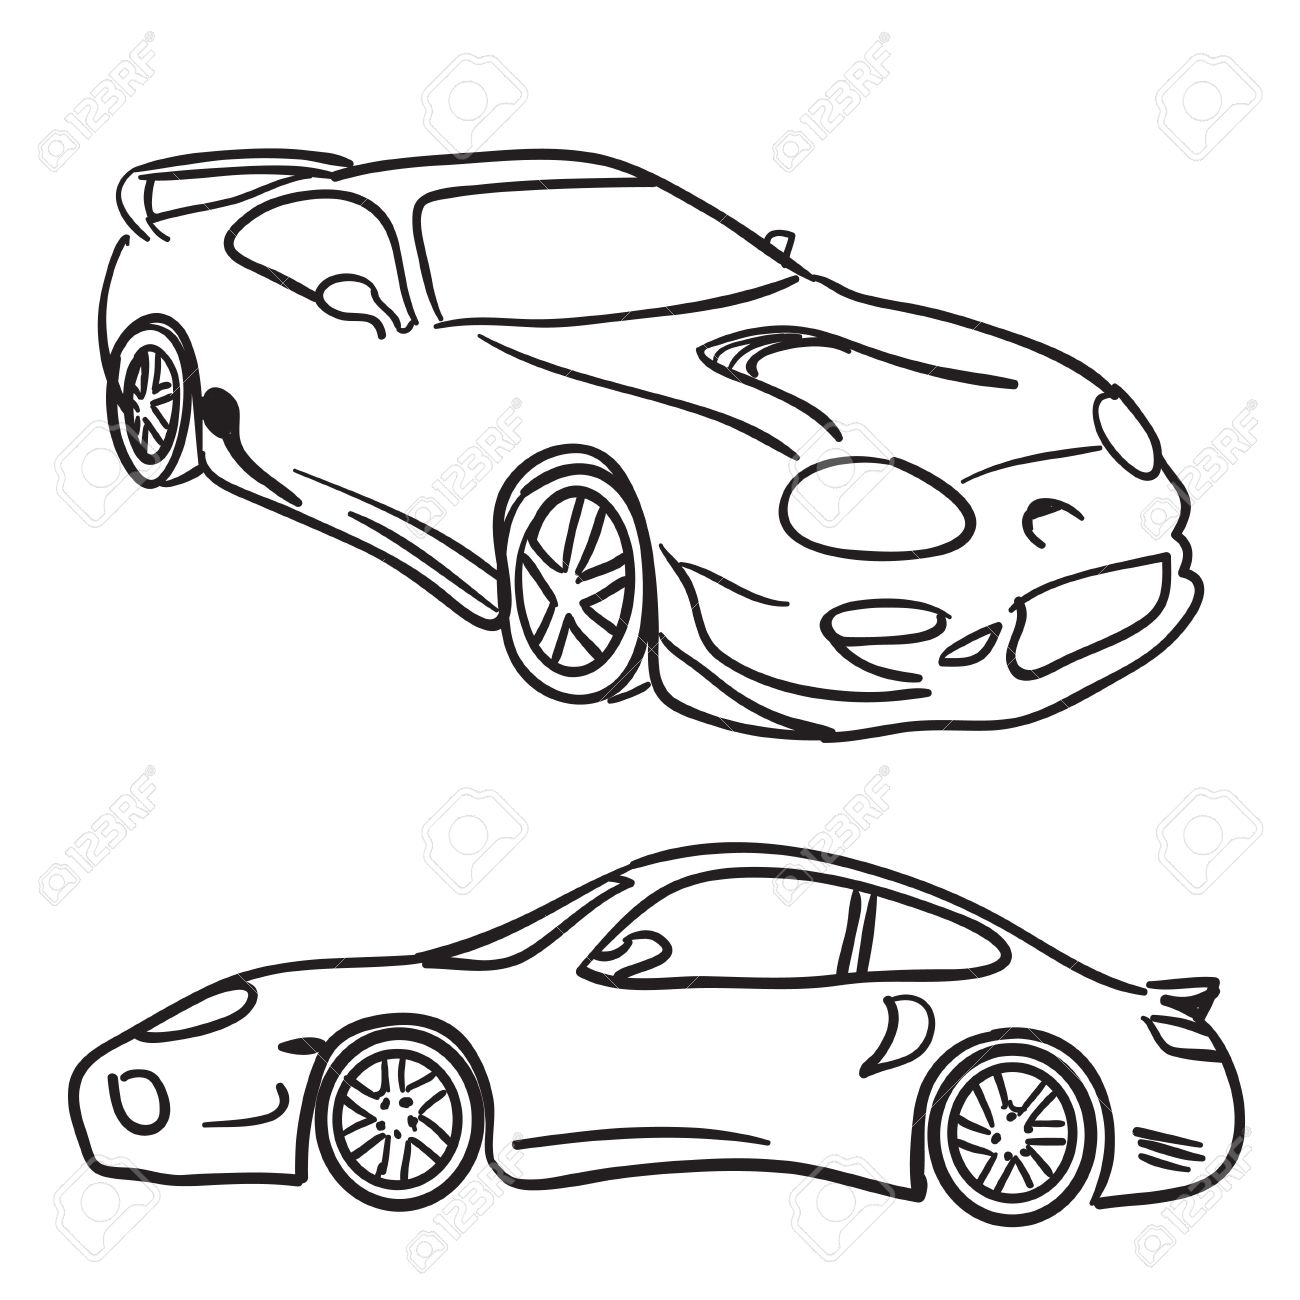 Clip art sports car drawings isolated over white in vector format paint them any color